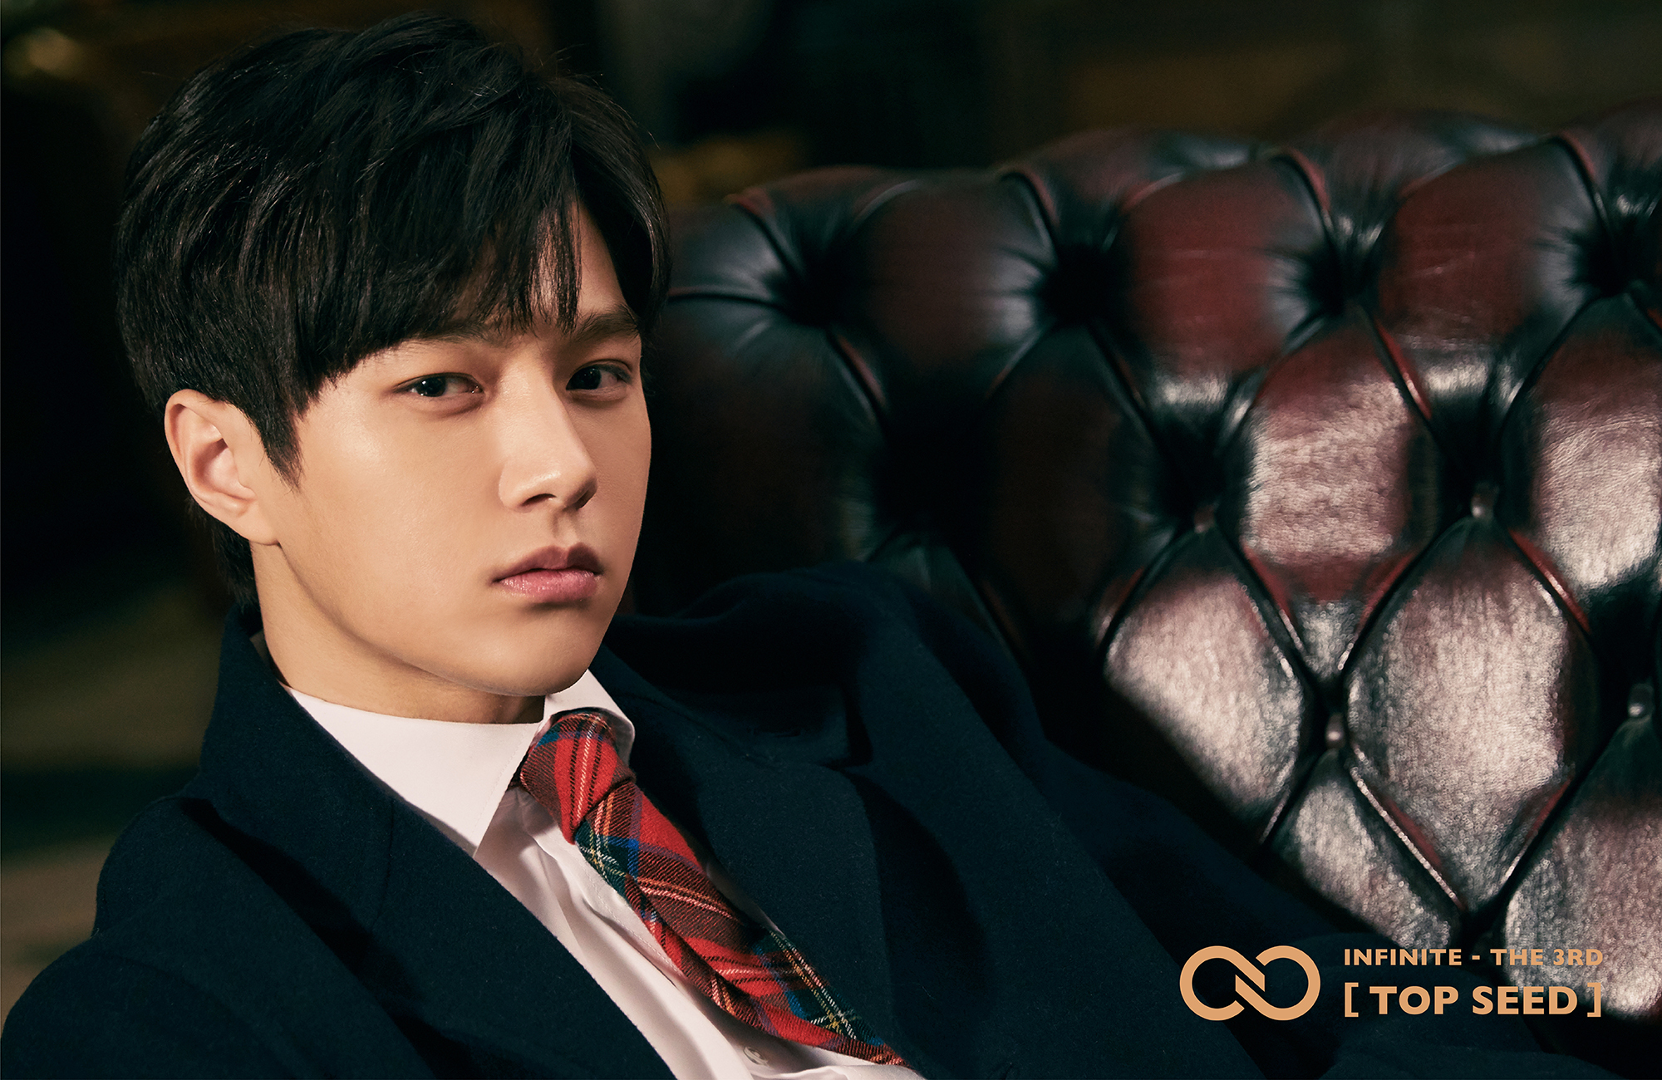 INFINITE_L_Top_Seed_promo_photo